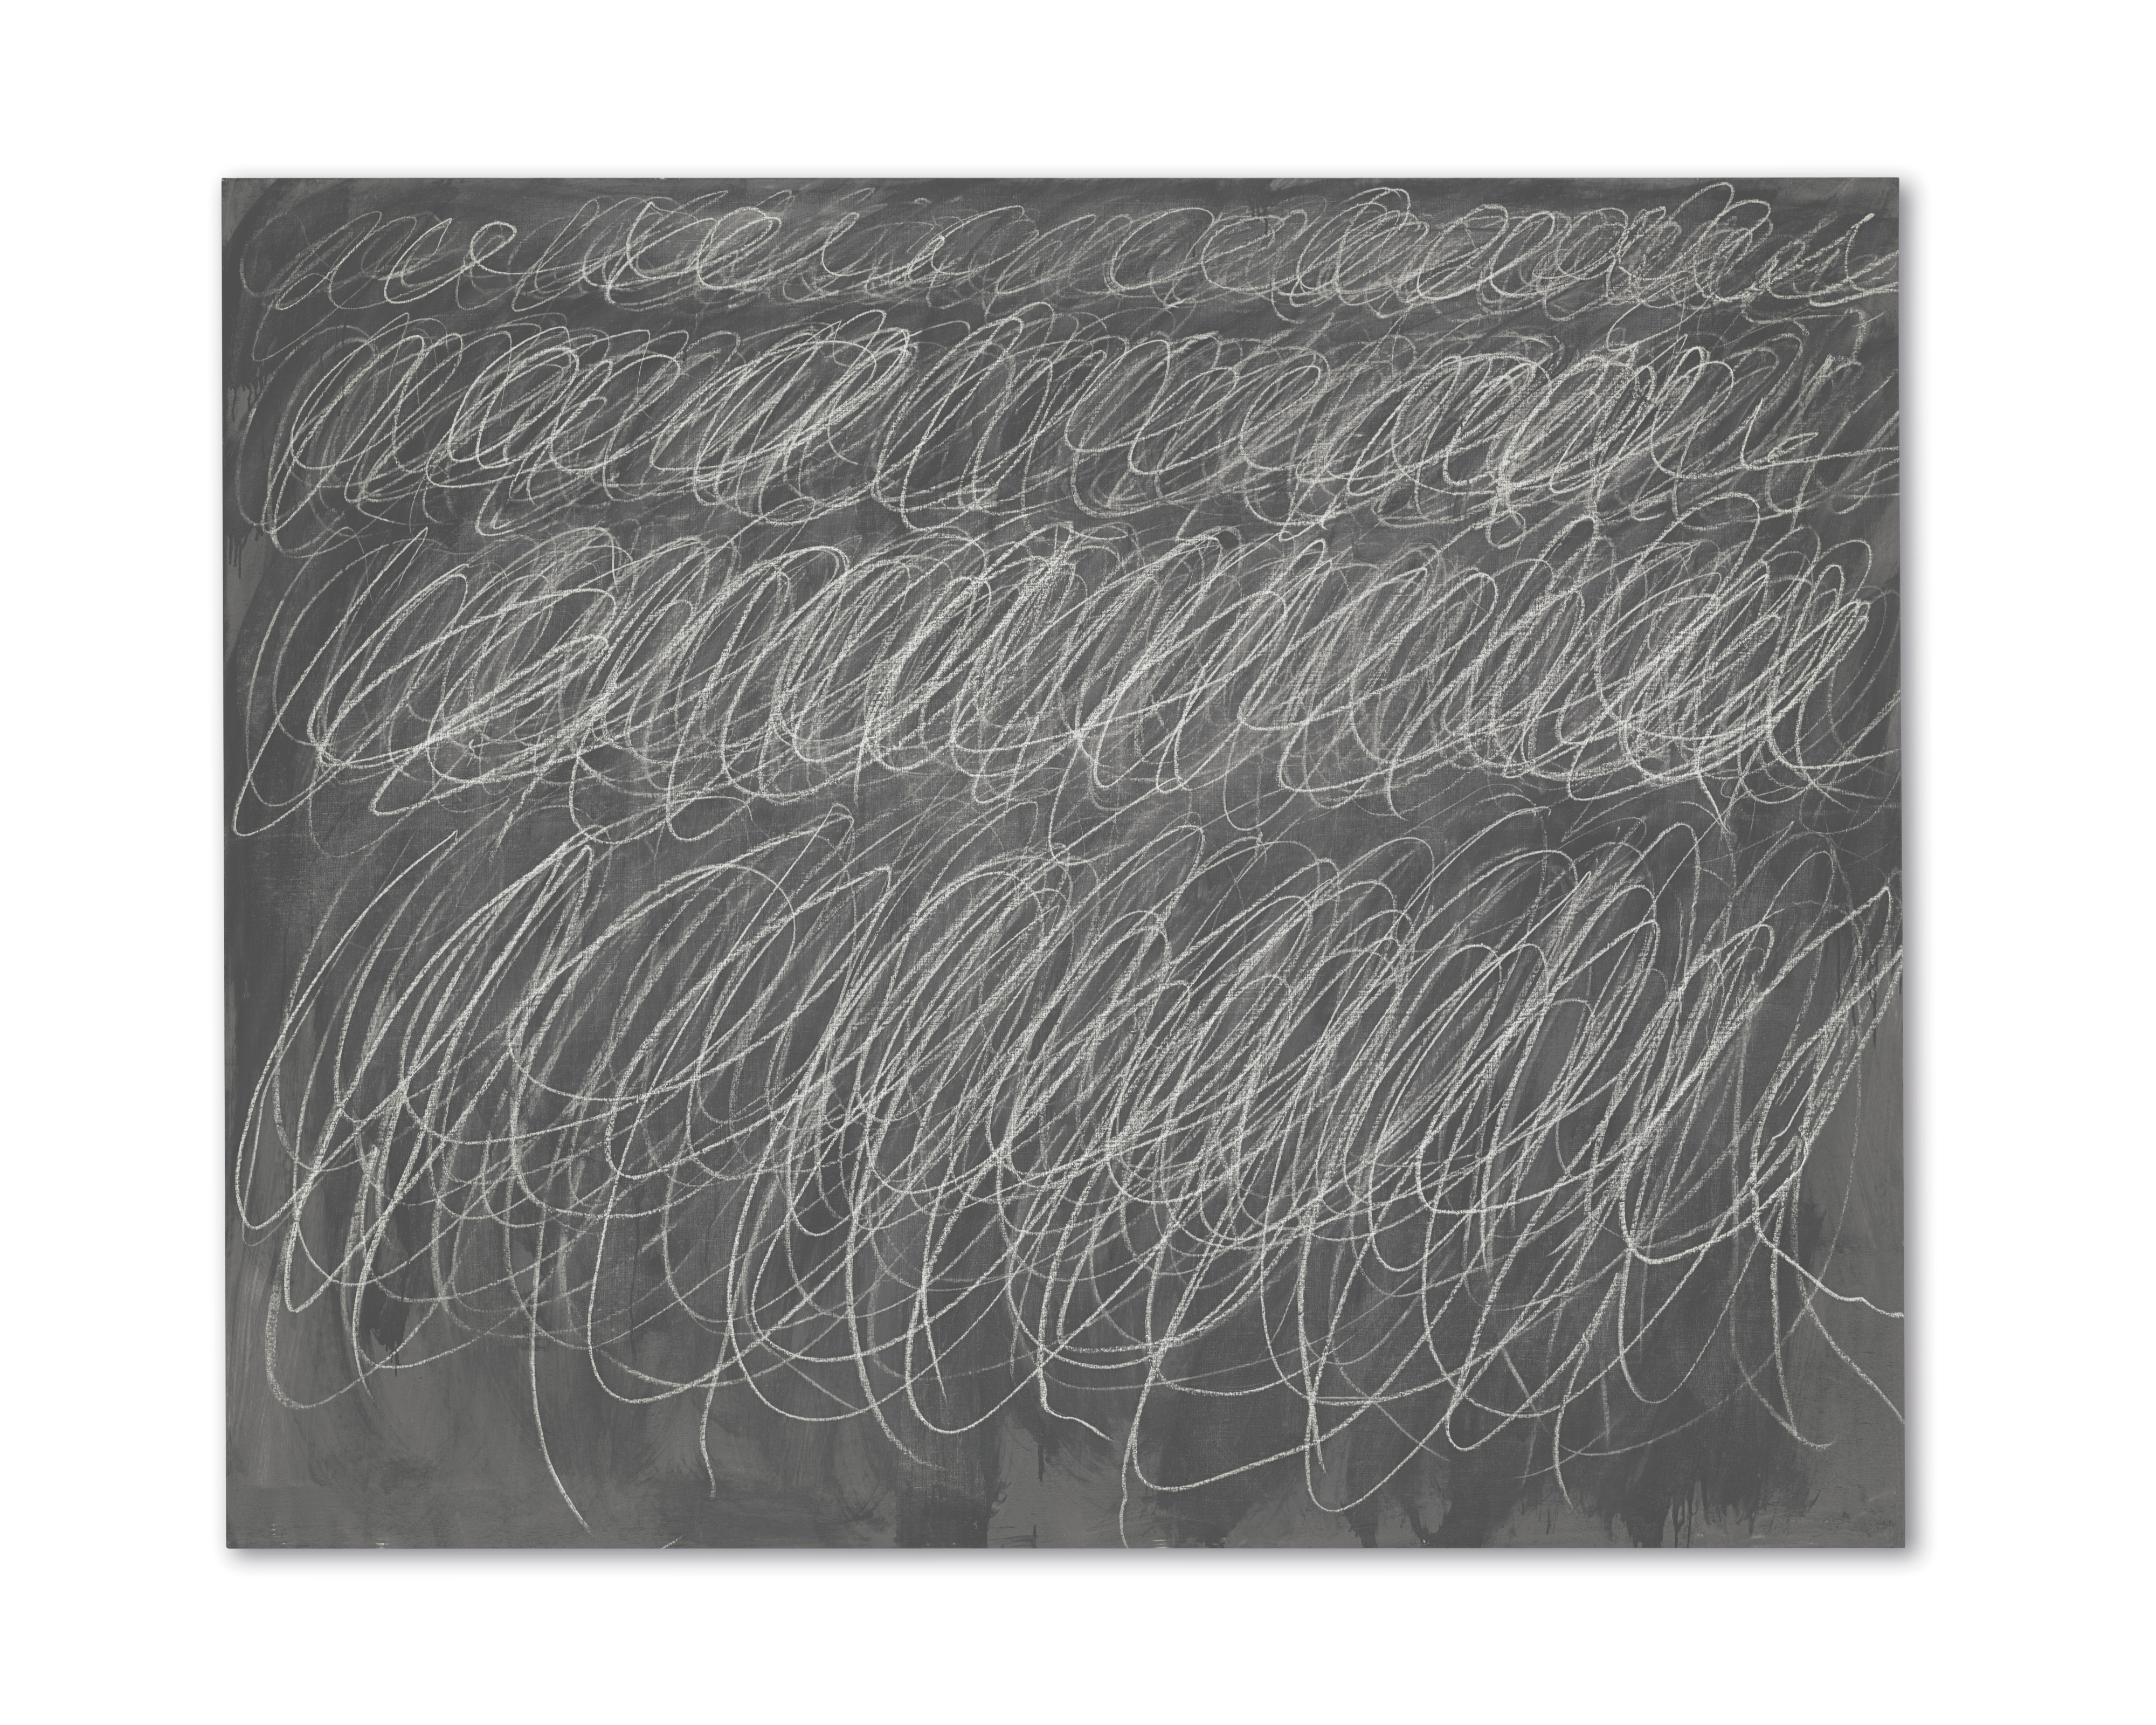 20, Twombly, Untitled